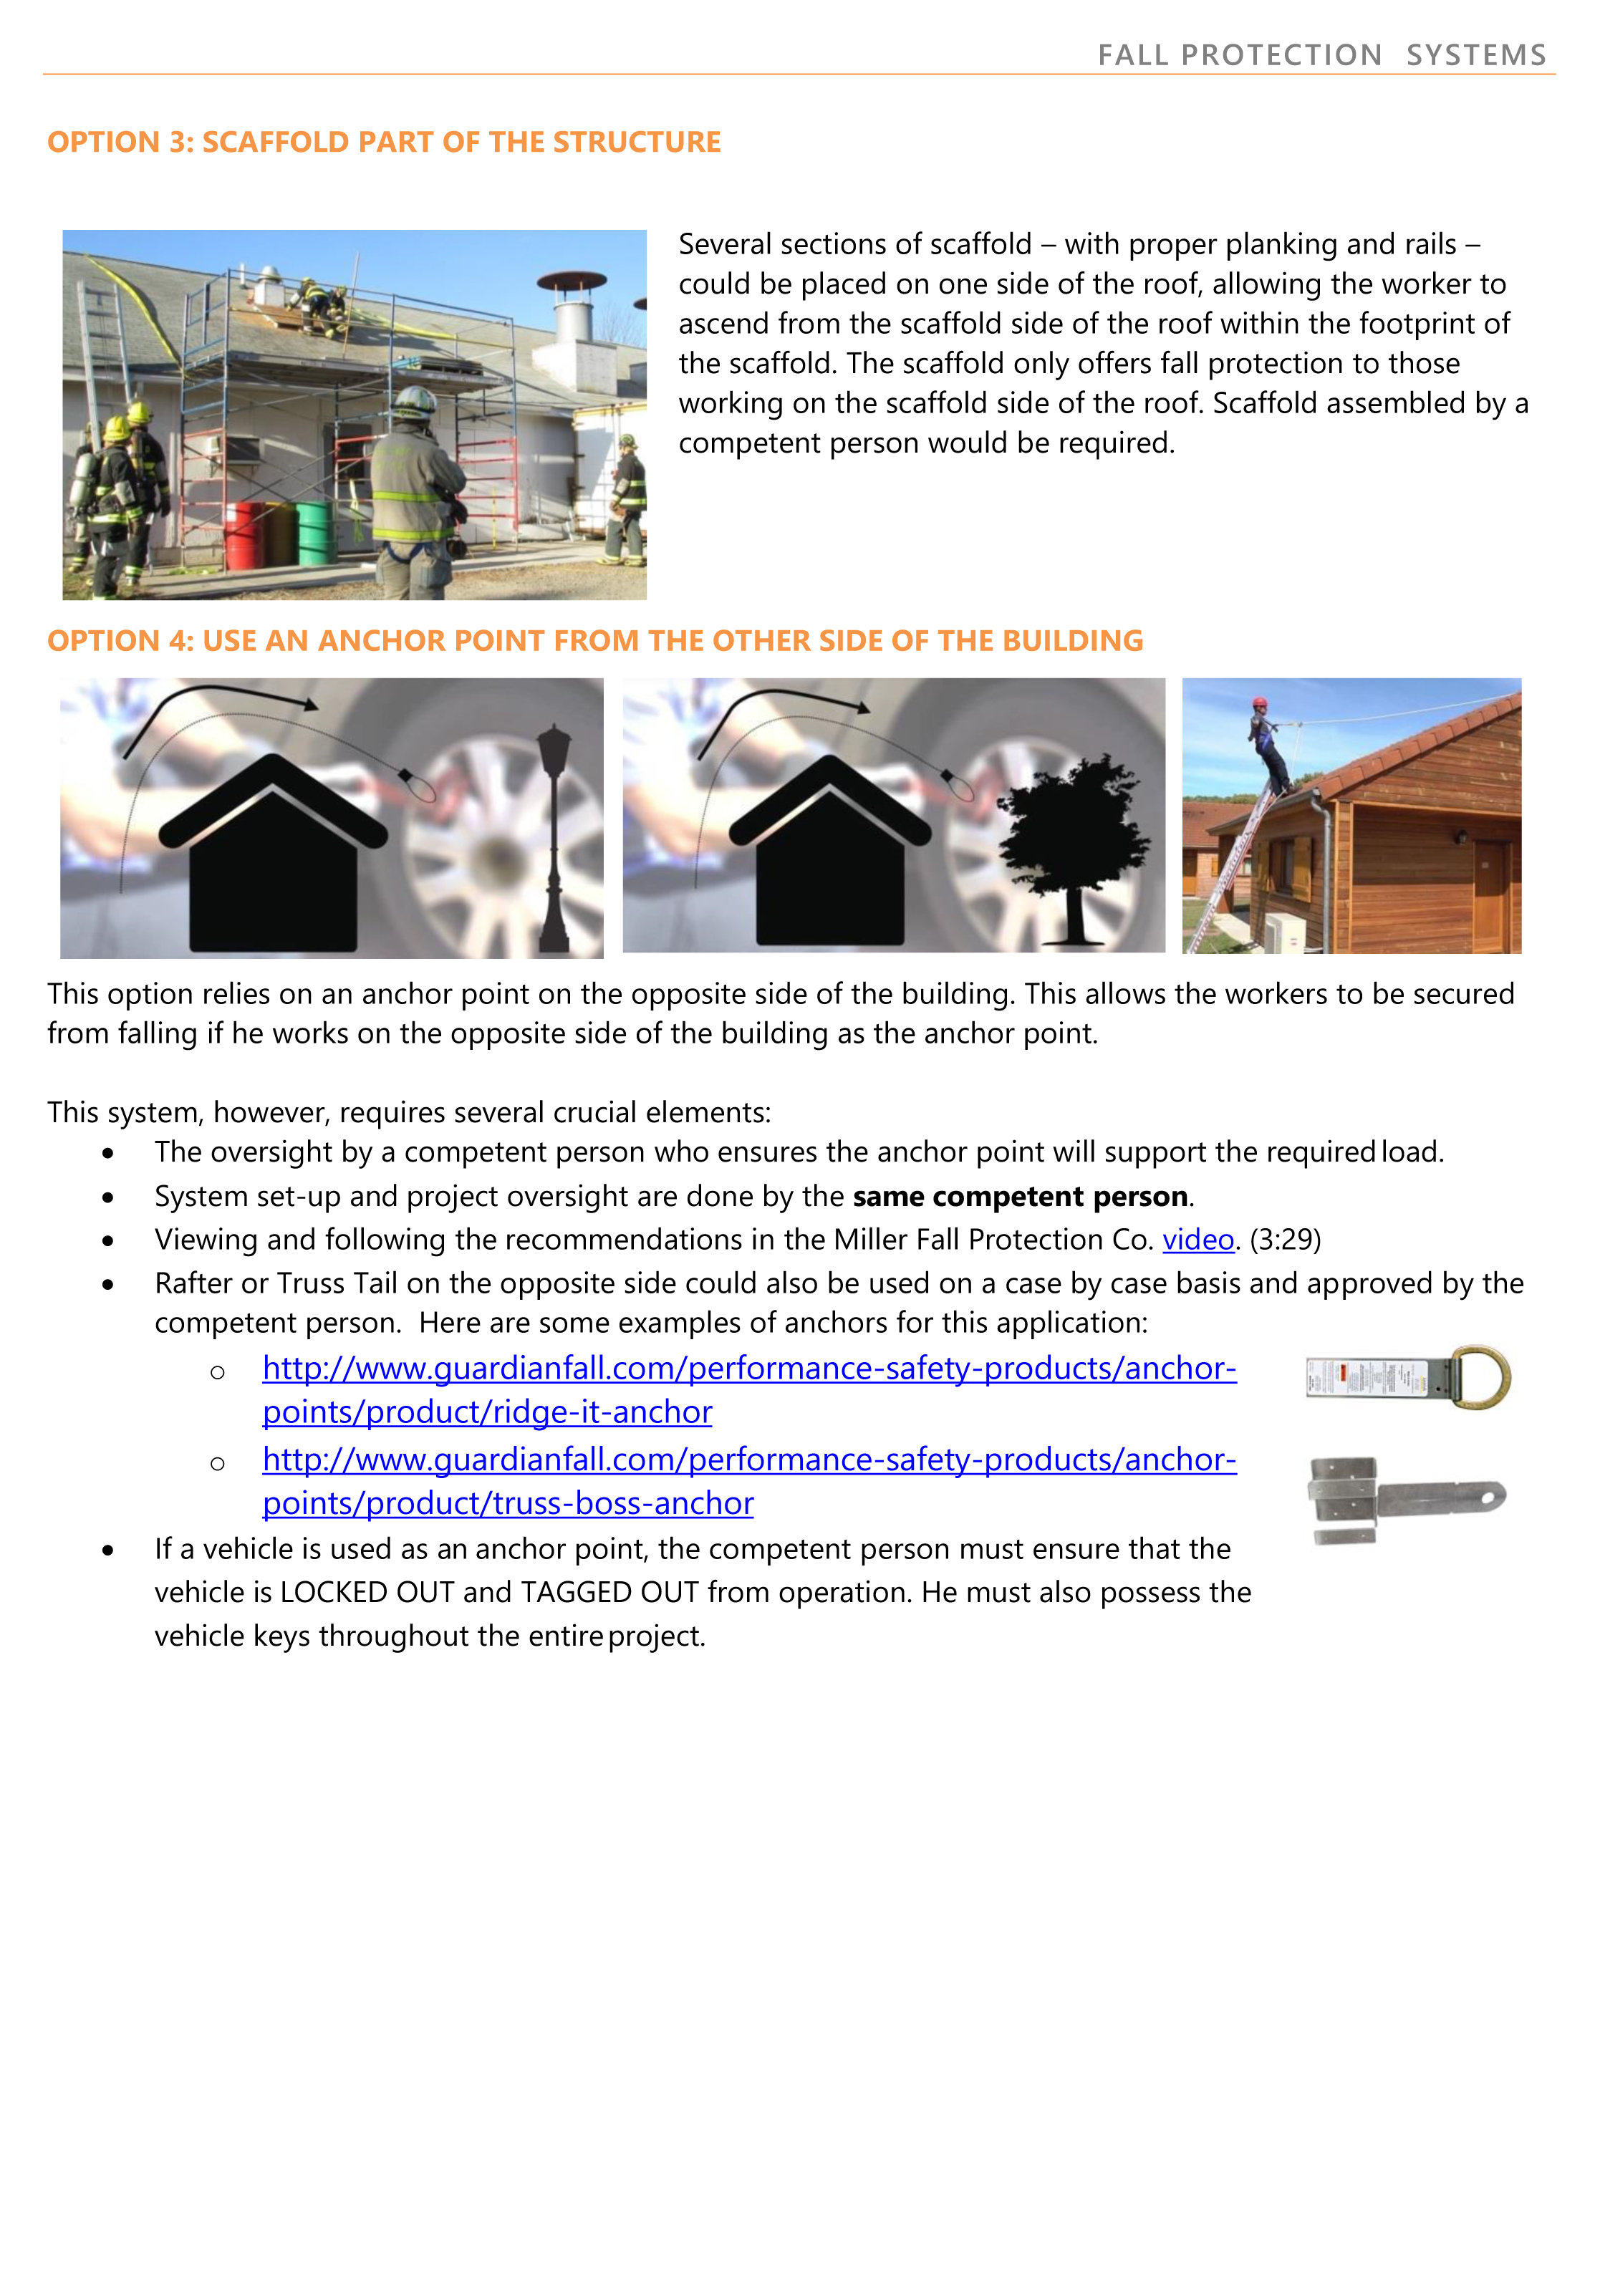 Fall Protection Guide-7